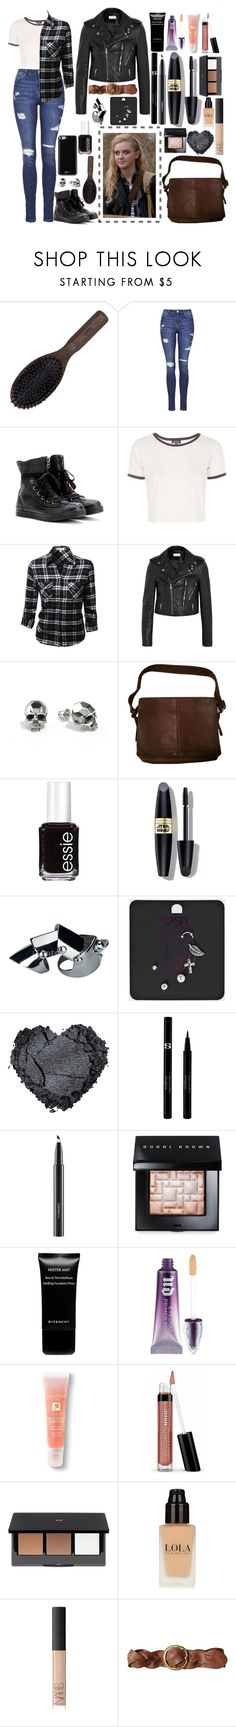 """""""Supernatural Style Steal: Claire Novak"""" by emmammh ❤ liked on Polyvore featuring Ibiza Hair, Topshop, Converse, Yves Saint Laurent, Kasun, Coach, Essie, Max Factor, Sisley and MAC Cosmetics"""